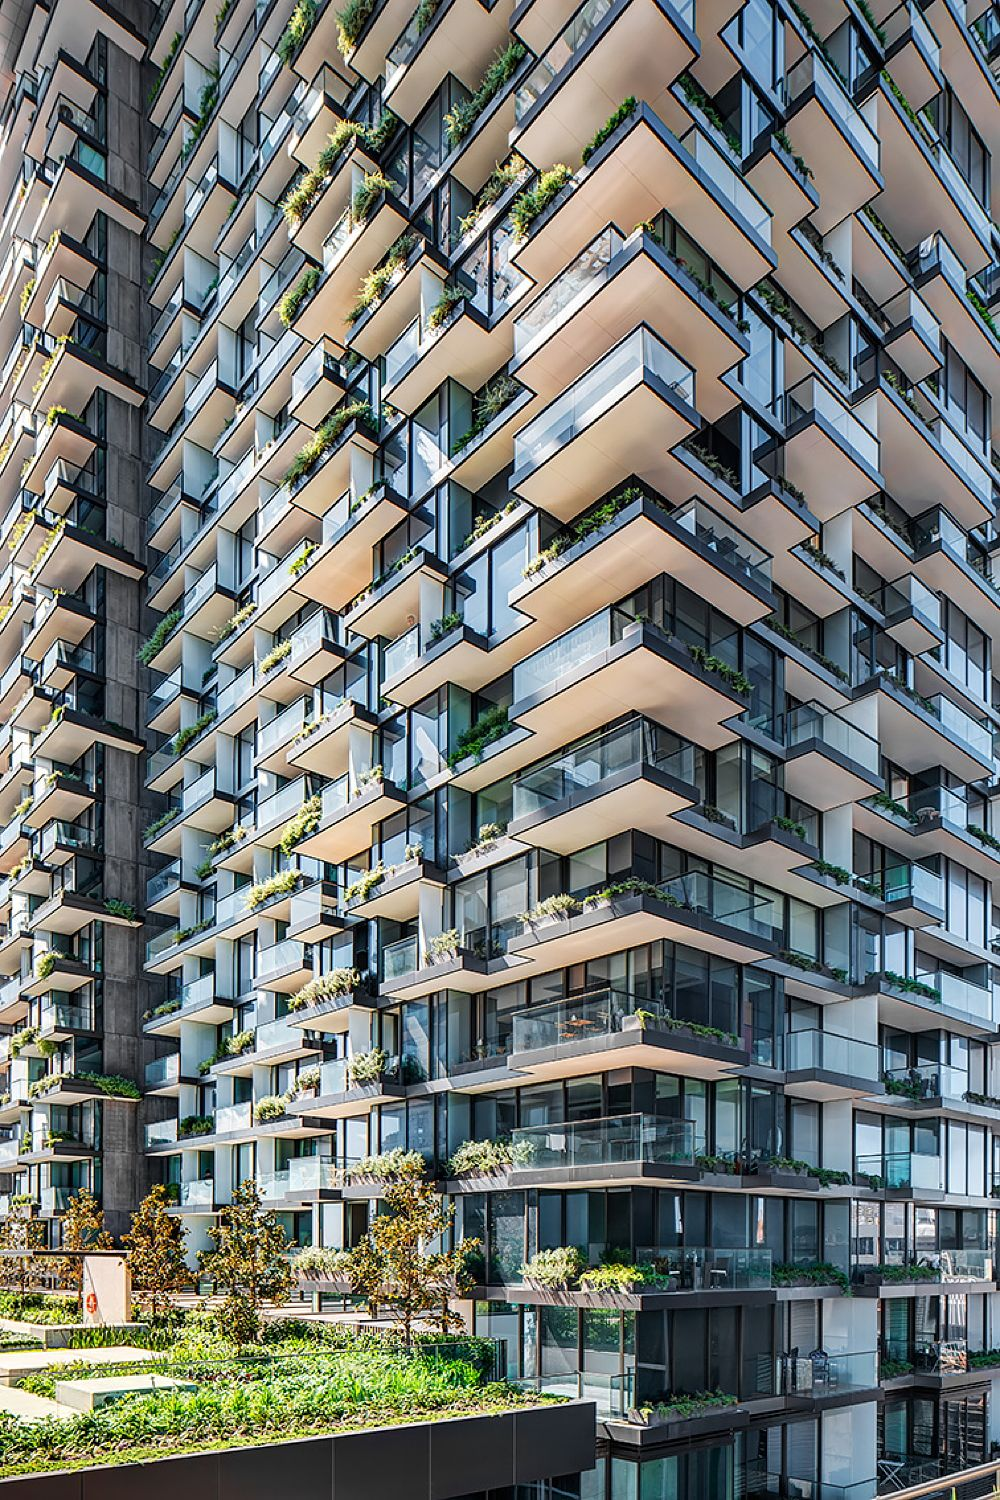 Jean nouvel and the one central park green homes in sydney for Architecture jean nouvel